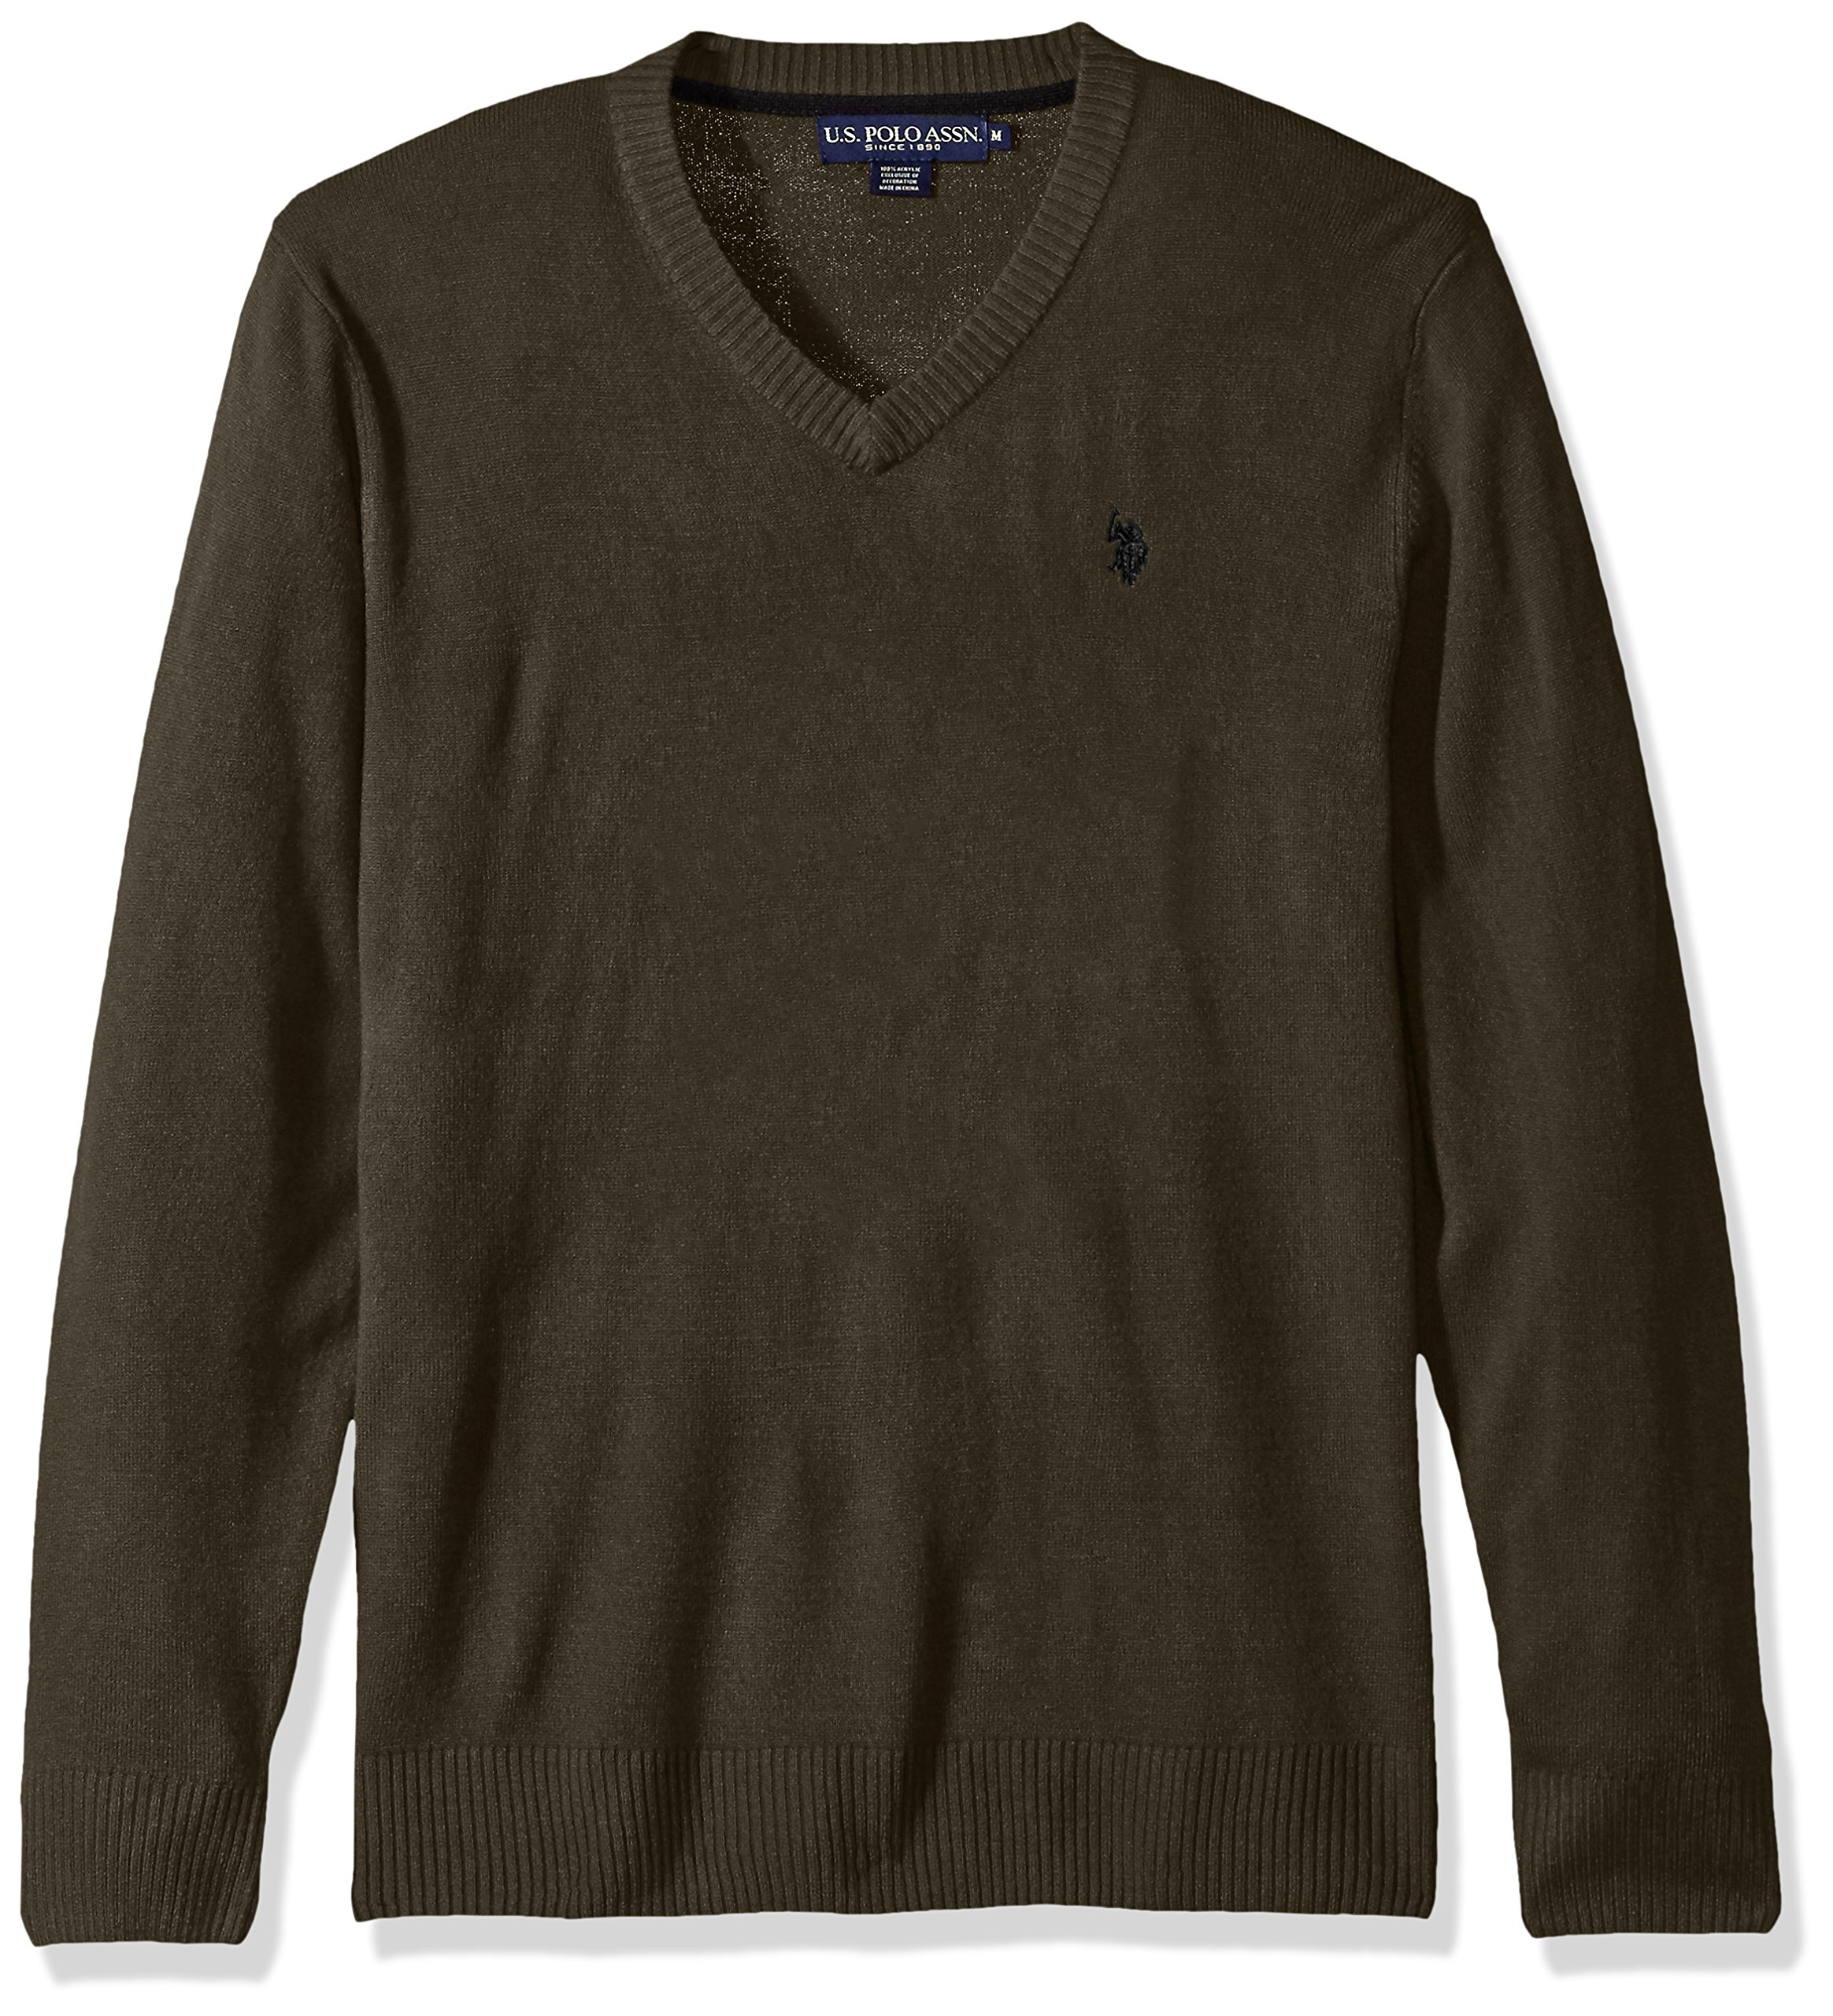 U.S. Polo Assn. Men's Solid V-Neck Sweater, Midnight Heather, XX-Large by U.S. Polo Assn.